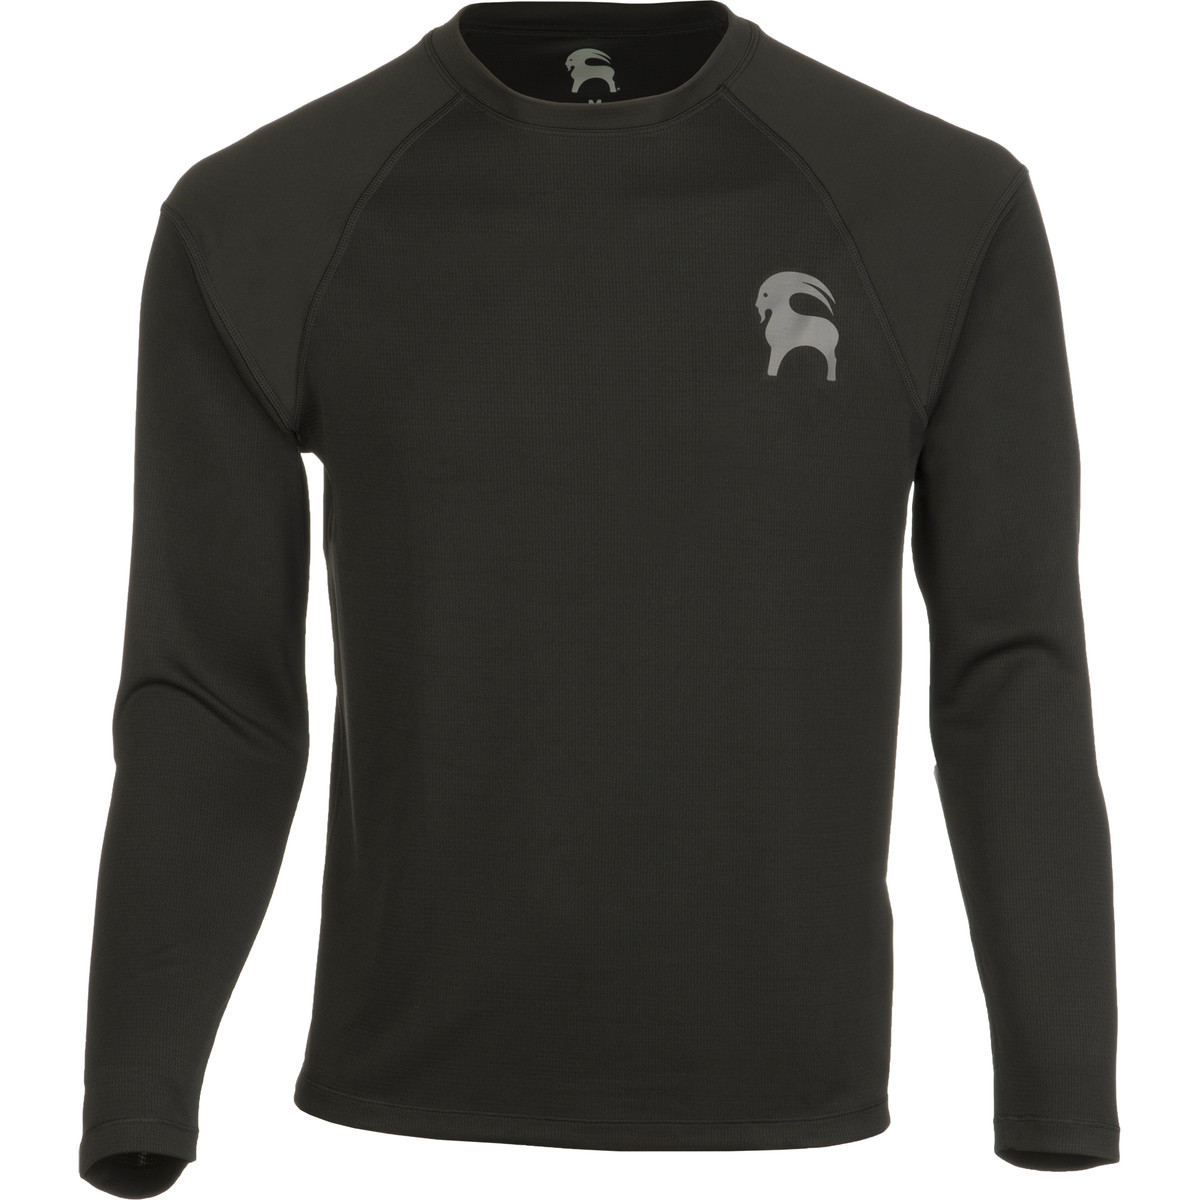 Backcountry.com Lightweight Crew Neck